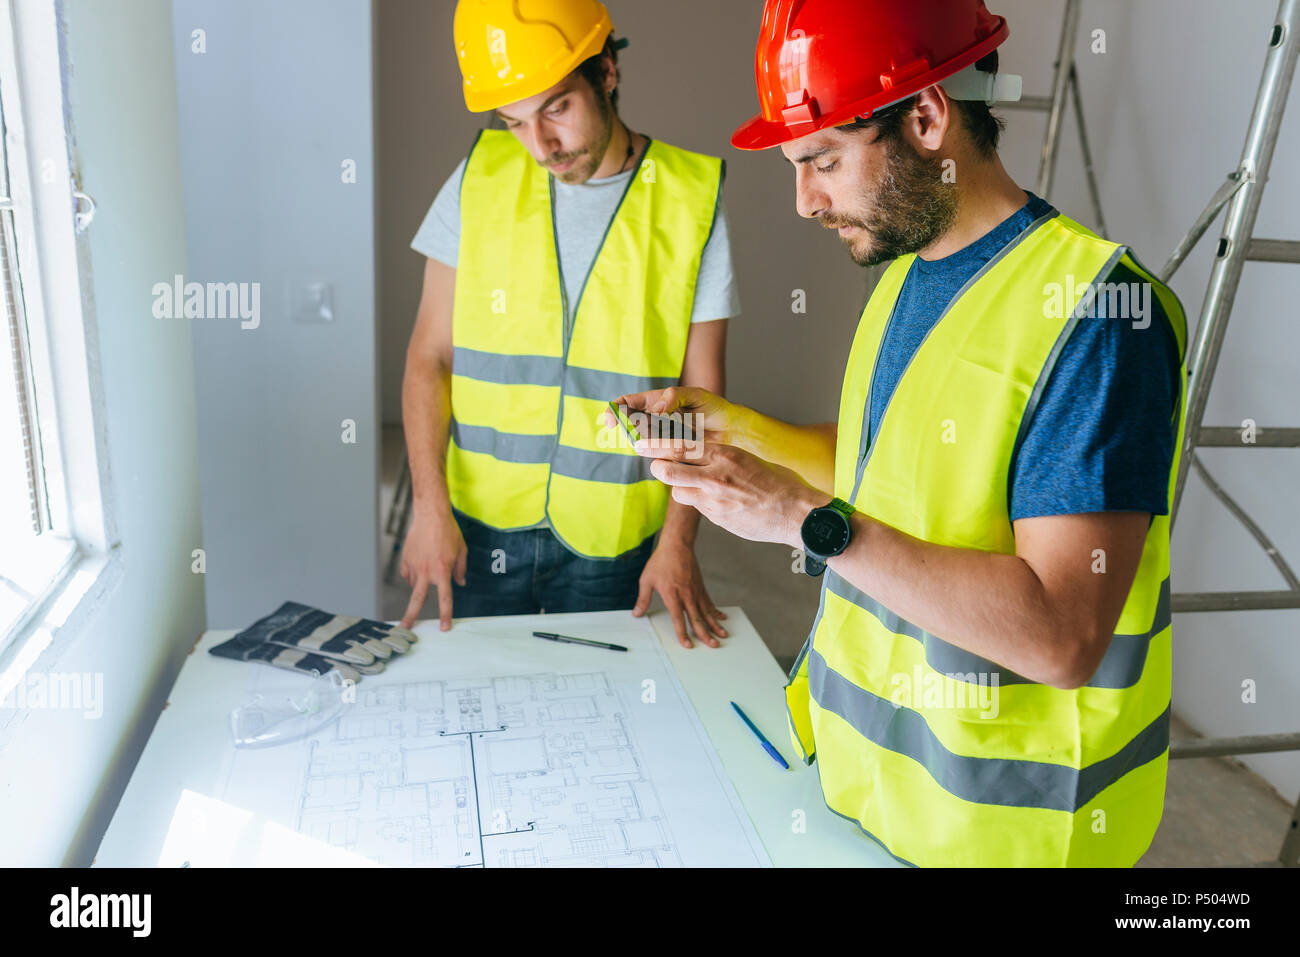 Workers taking a picture of the plan with mobile phone - Stock Image